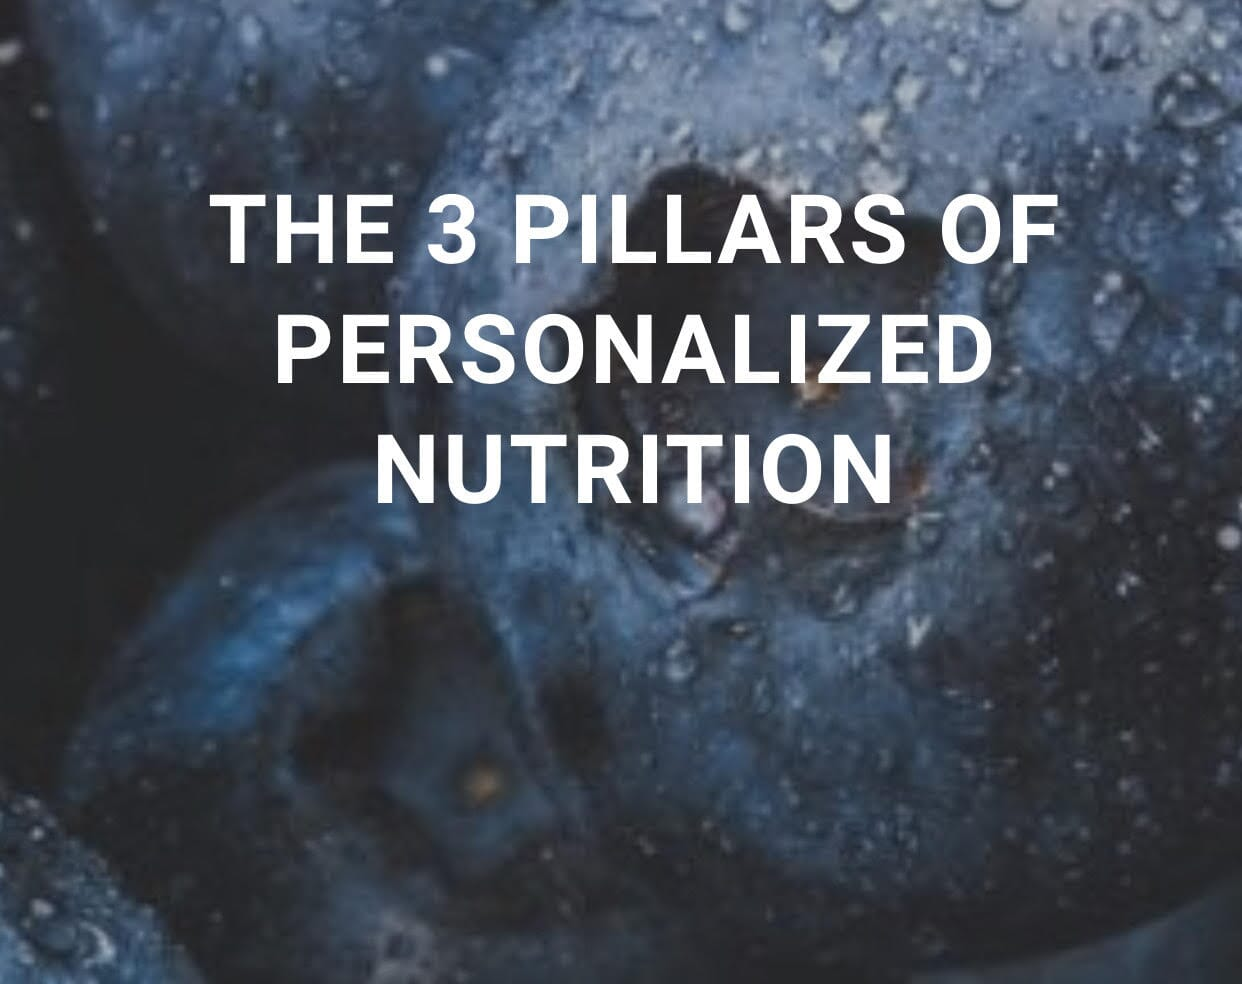 The 3 Pillars of Personalized Nutrition